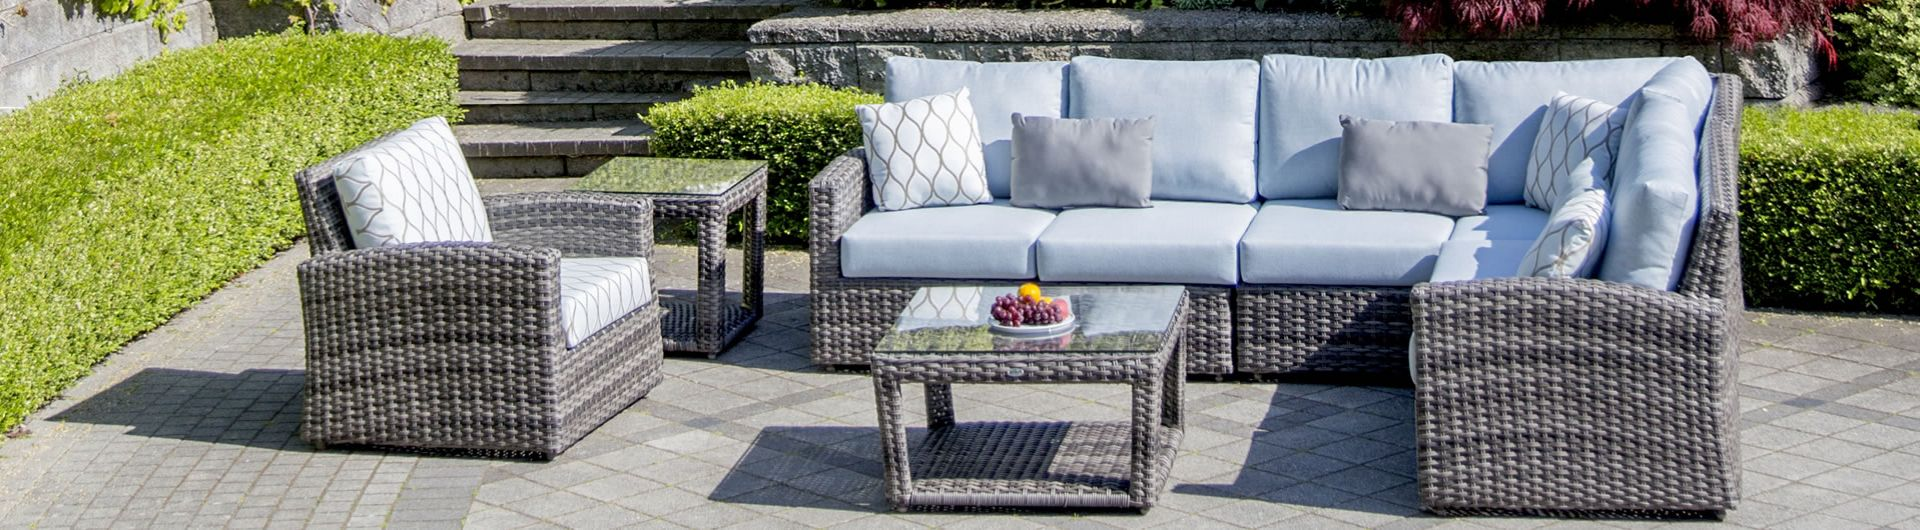 Portfino Sectional Collection